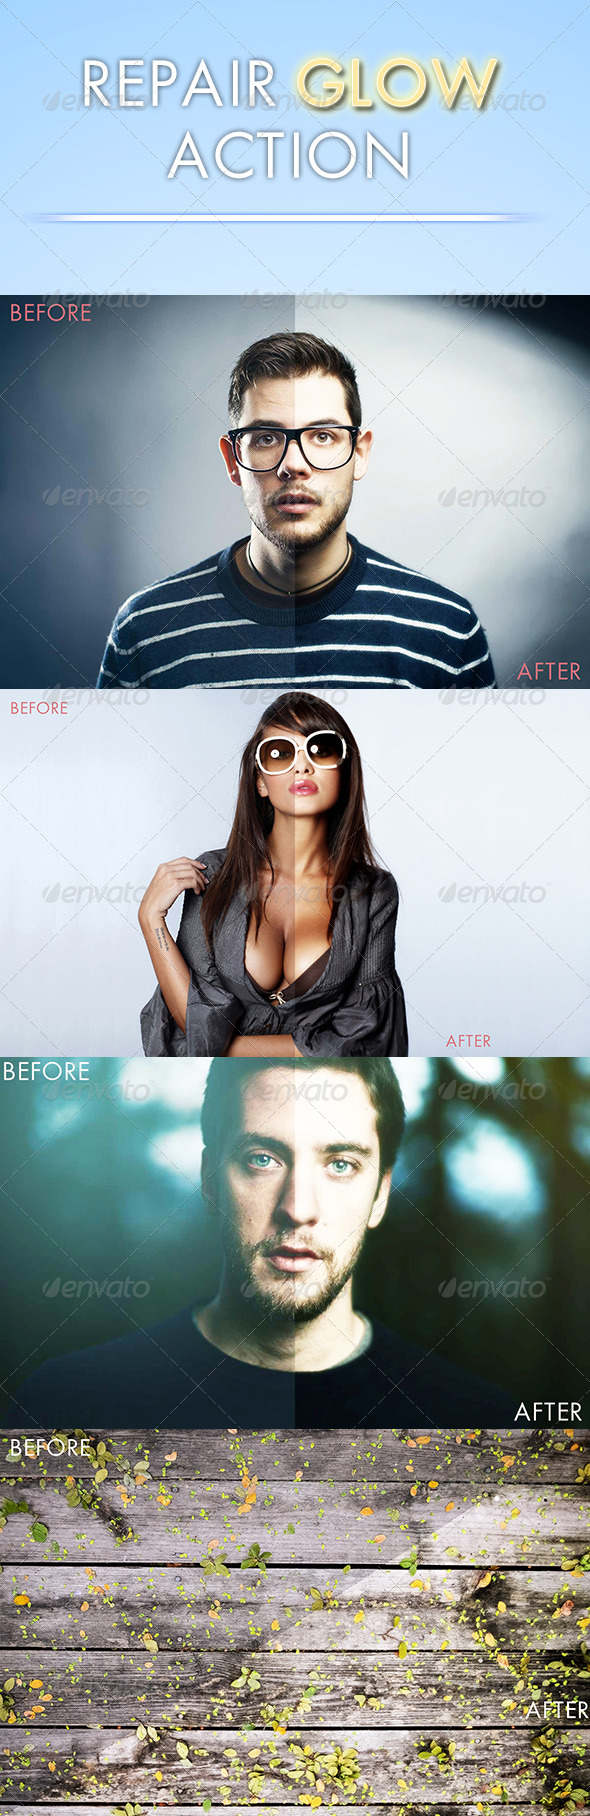 GraphicRiver Repair Glow Action 7129460